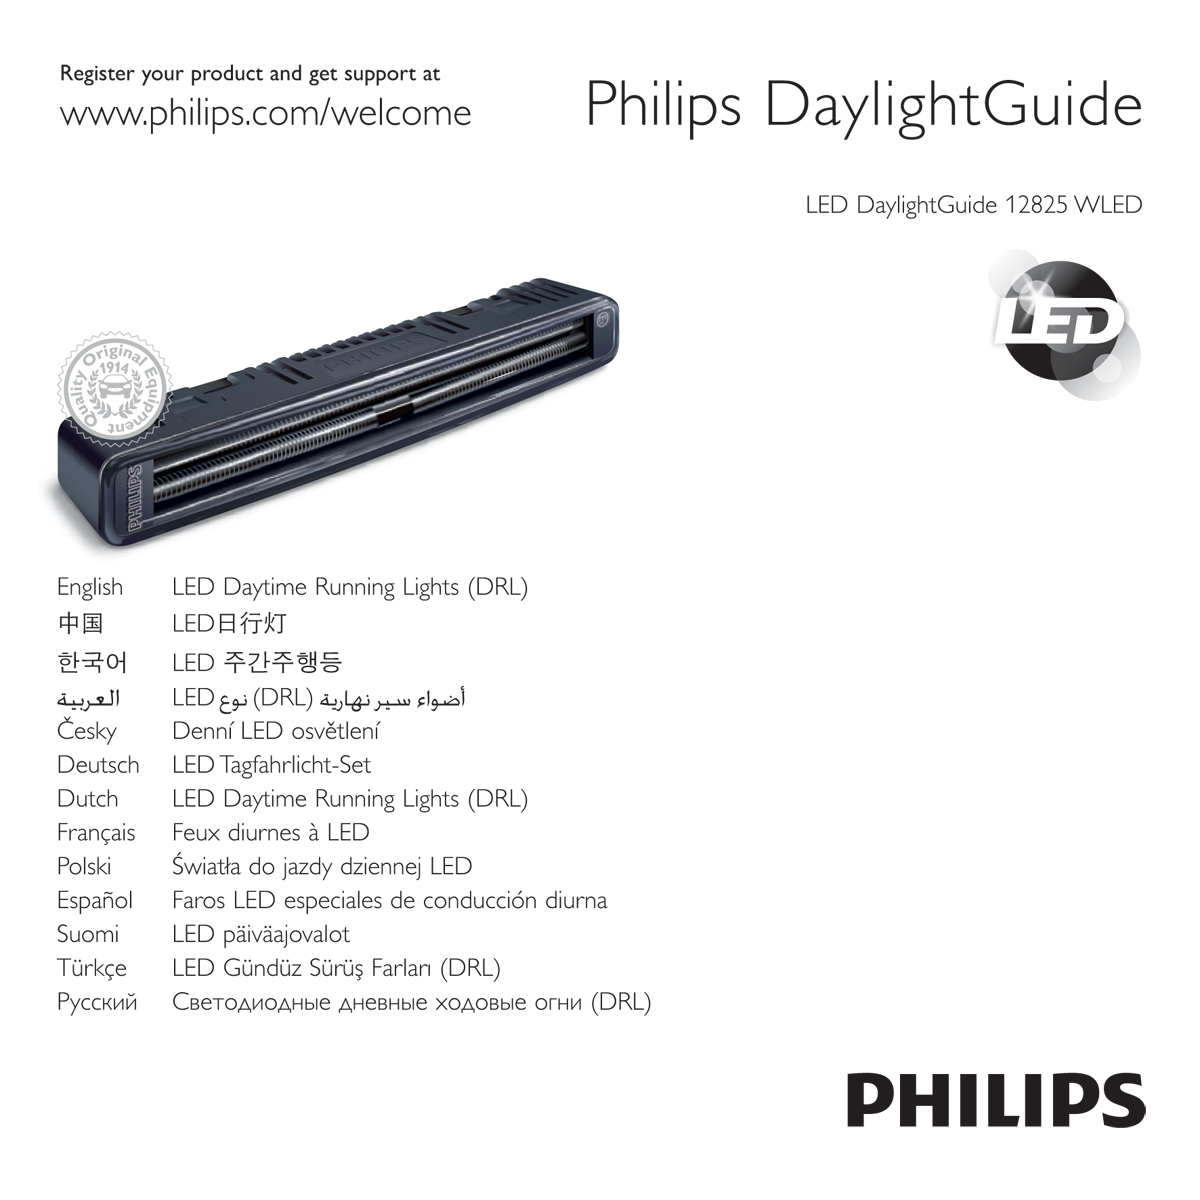 Philips LED DaylightGuide user guide - complete pdf